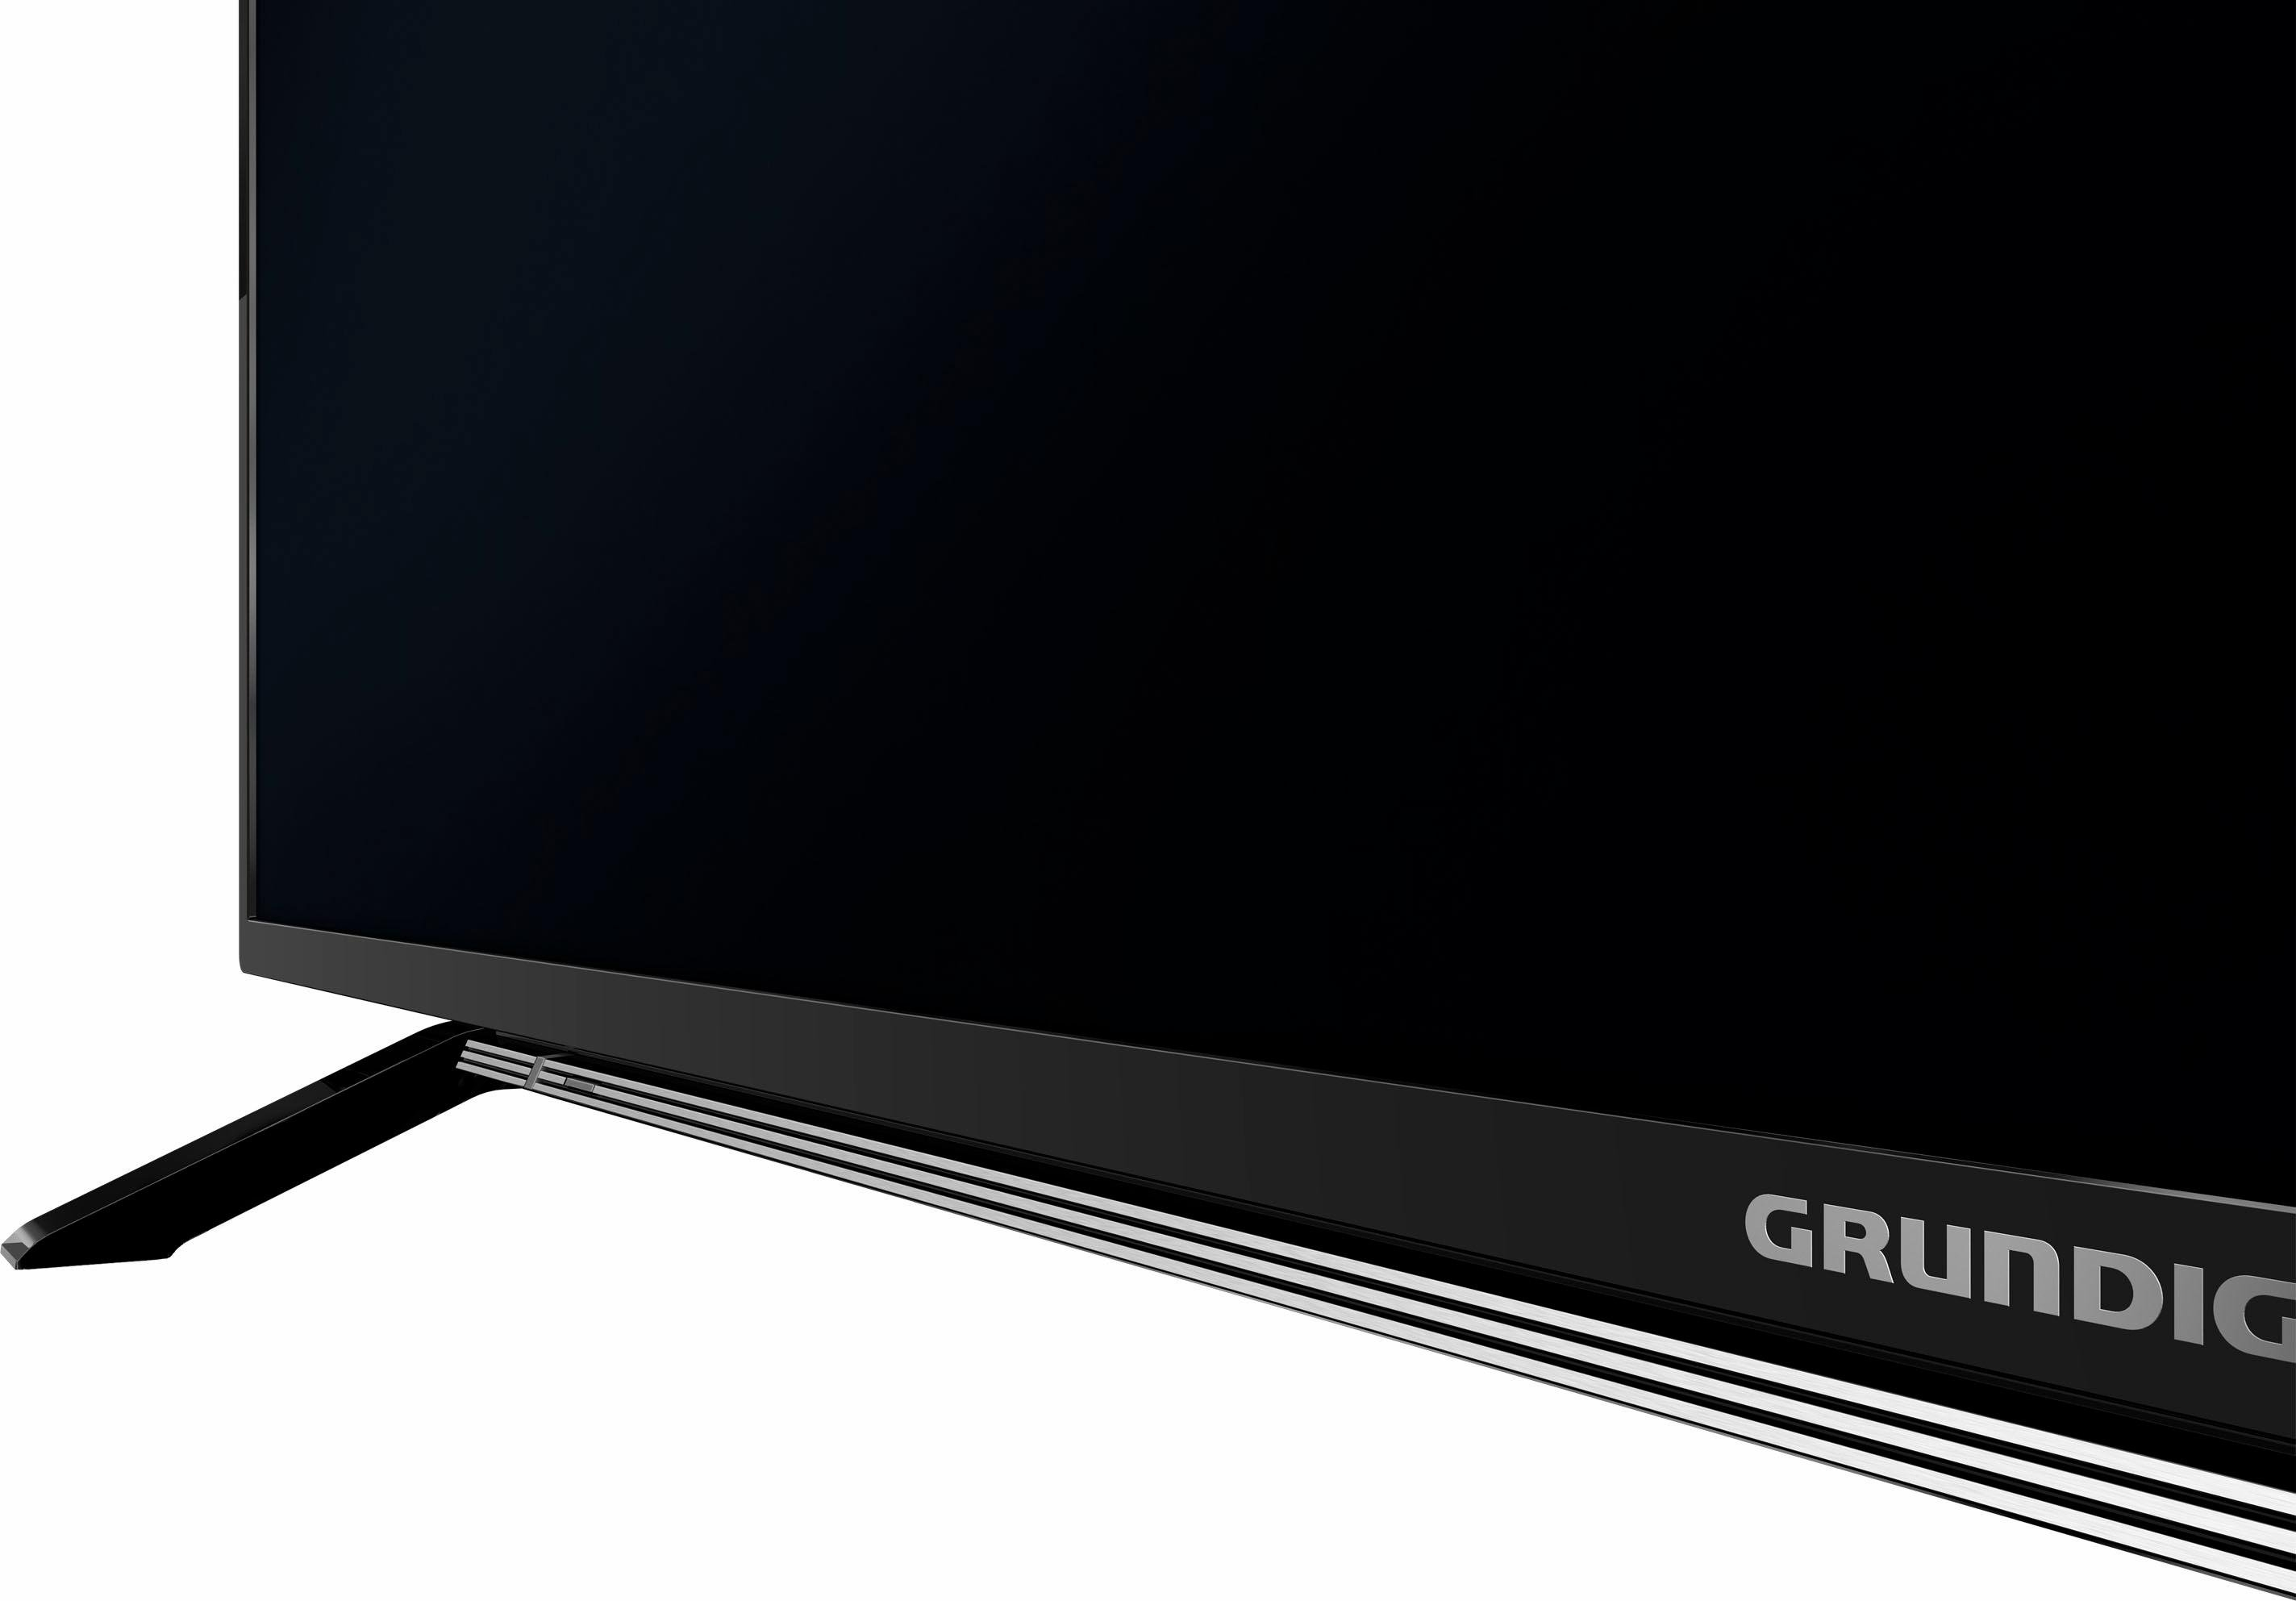 grundig 40 vlx 7000 bp led tv 102 cm 40 inch uhd 4k smart tv snel gevonden otto. Black Bedroom Furniture Sets. Home Design Ideas